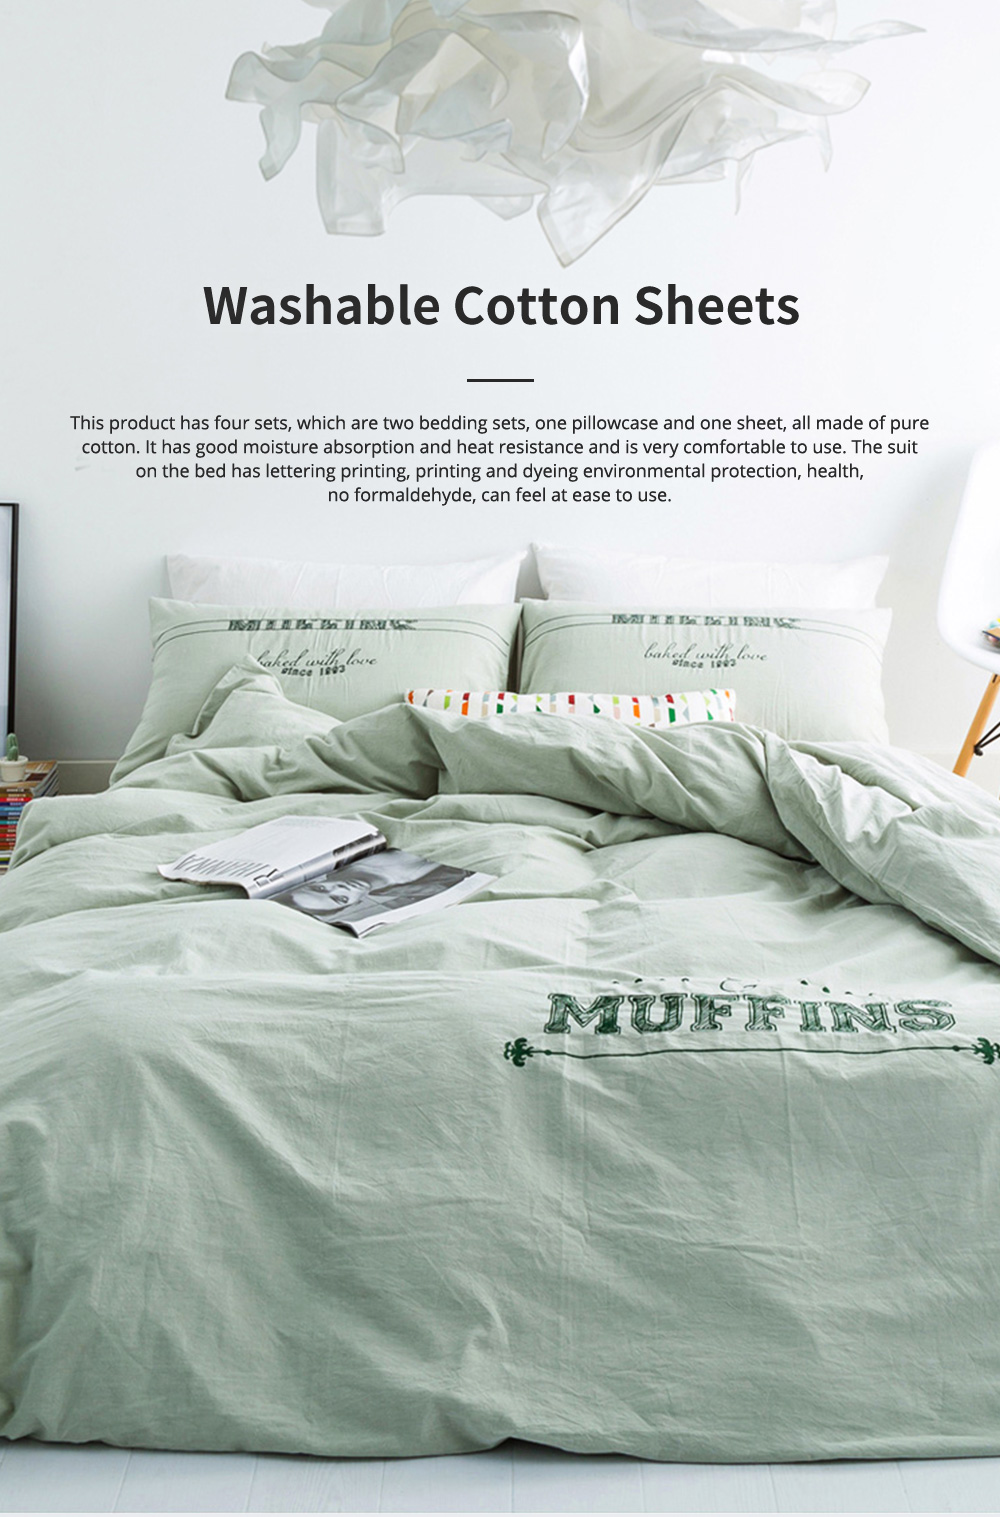 Washable Cotton Sheets Skin-friendly Quilt Cover 4 pieces Pure Cotton Bedding Sheets 0